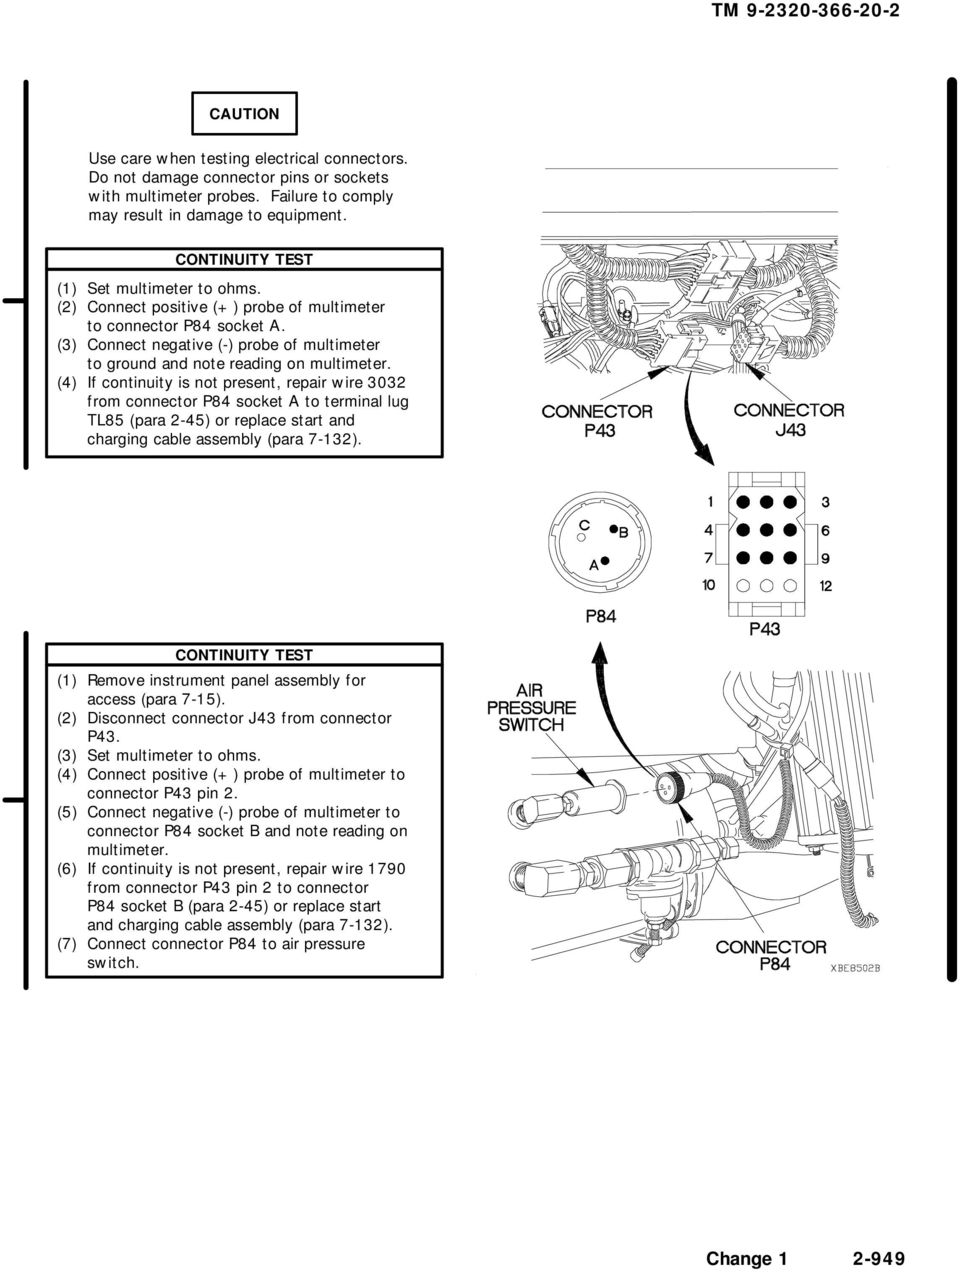 Technical Manual Maintenance Instructions Unit M1083 Voltmeter Wiring Diagram Charging System In 3 Connect Negative Probe Of Multimeter To Ground And Note Reading